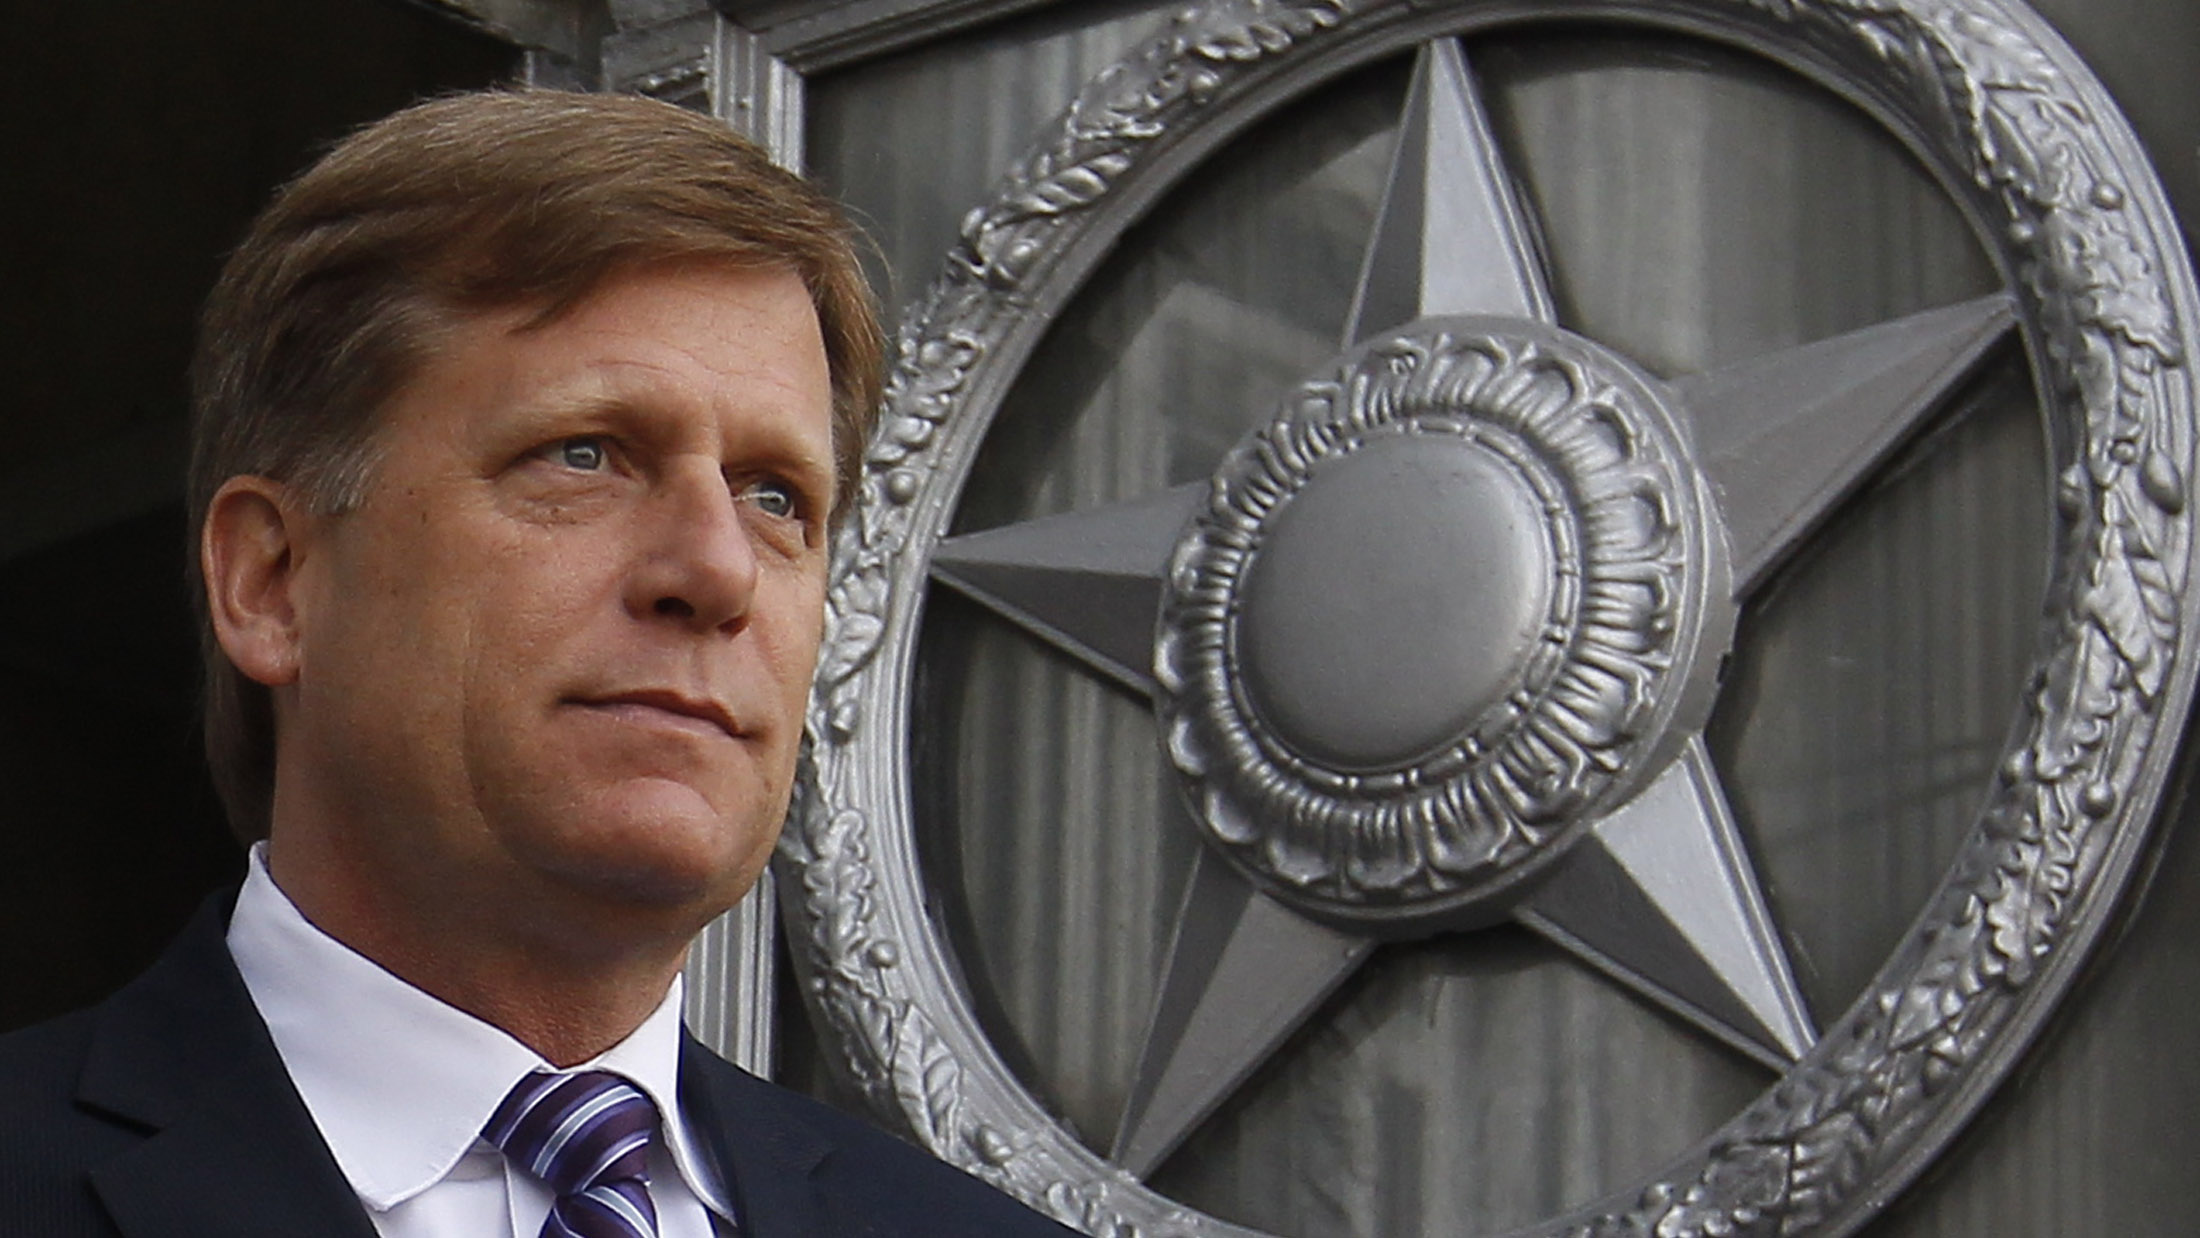 Close up of a white man in front of a star emblem